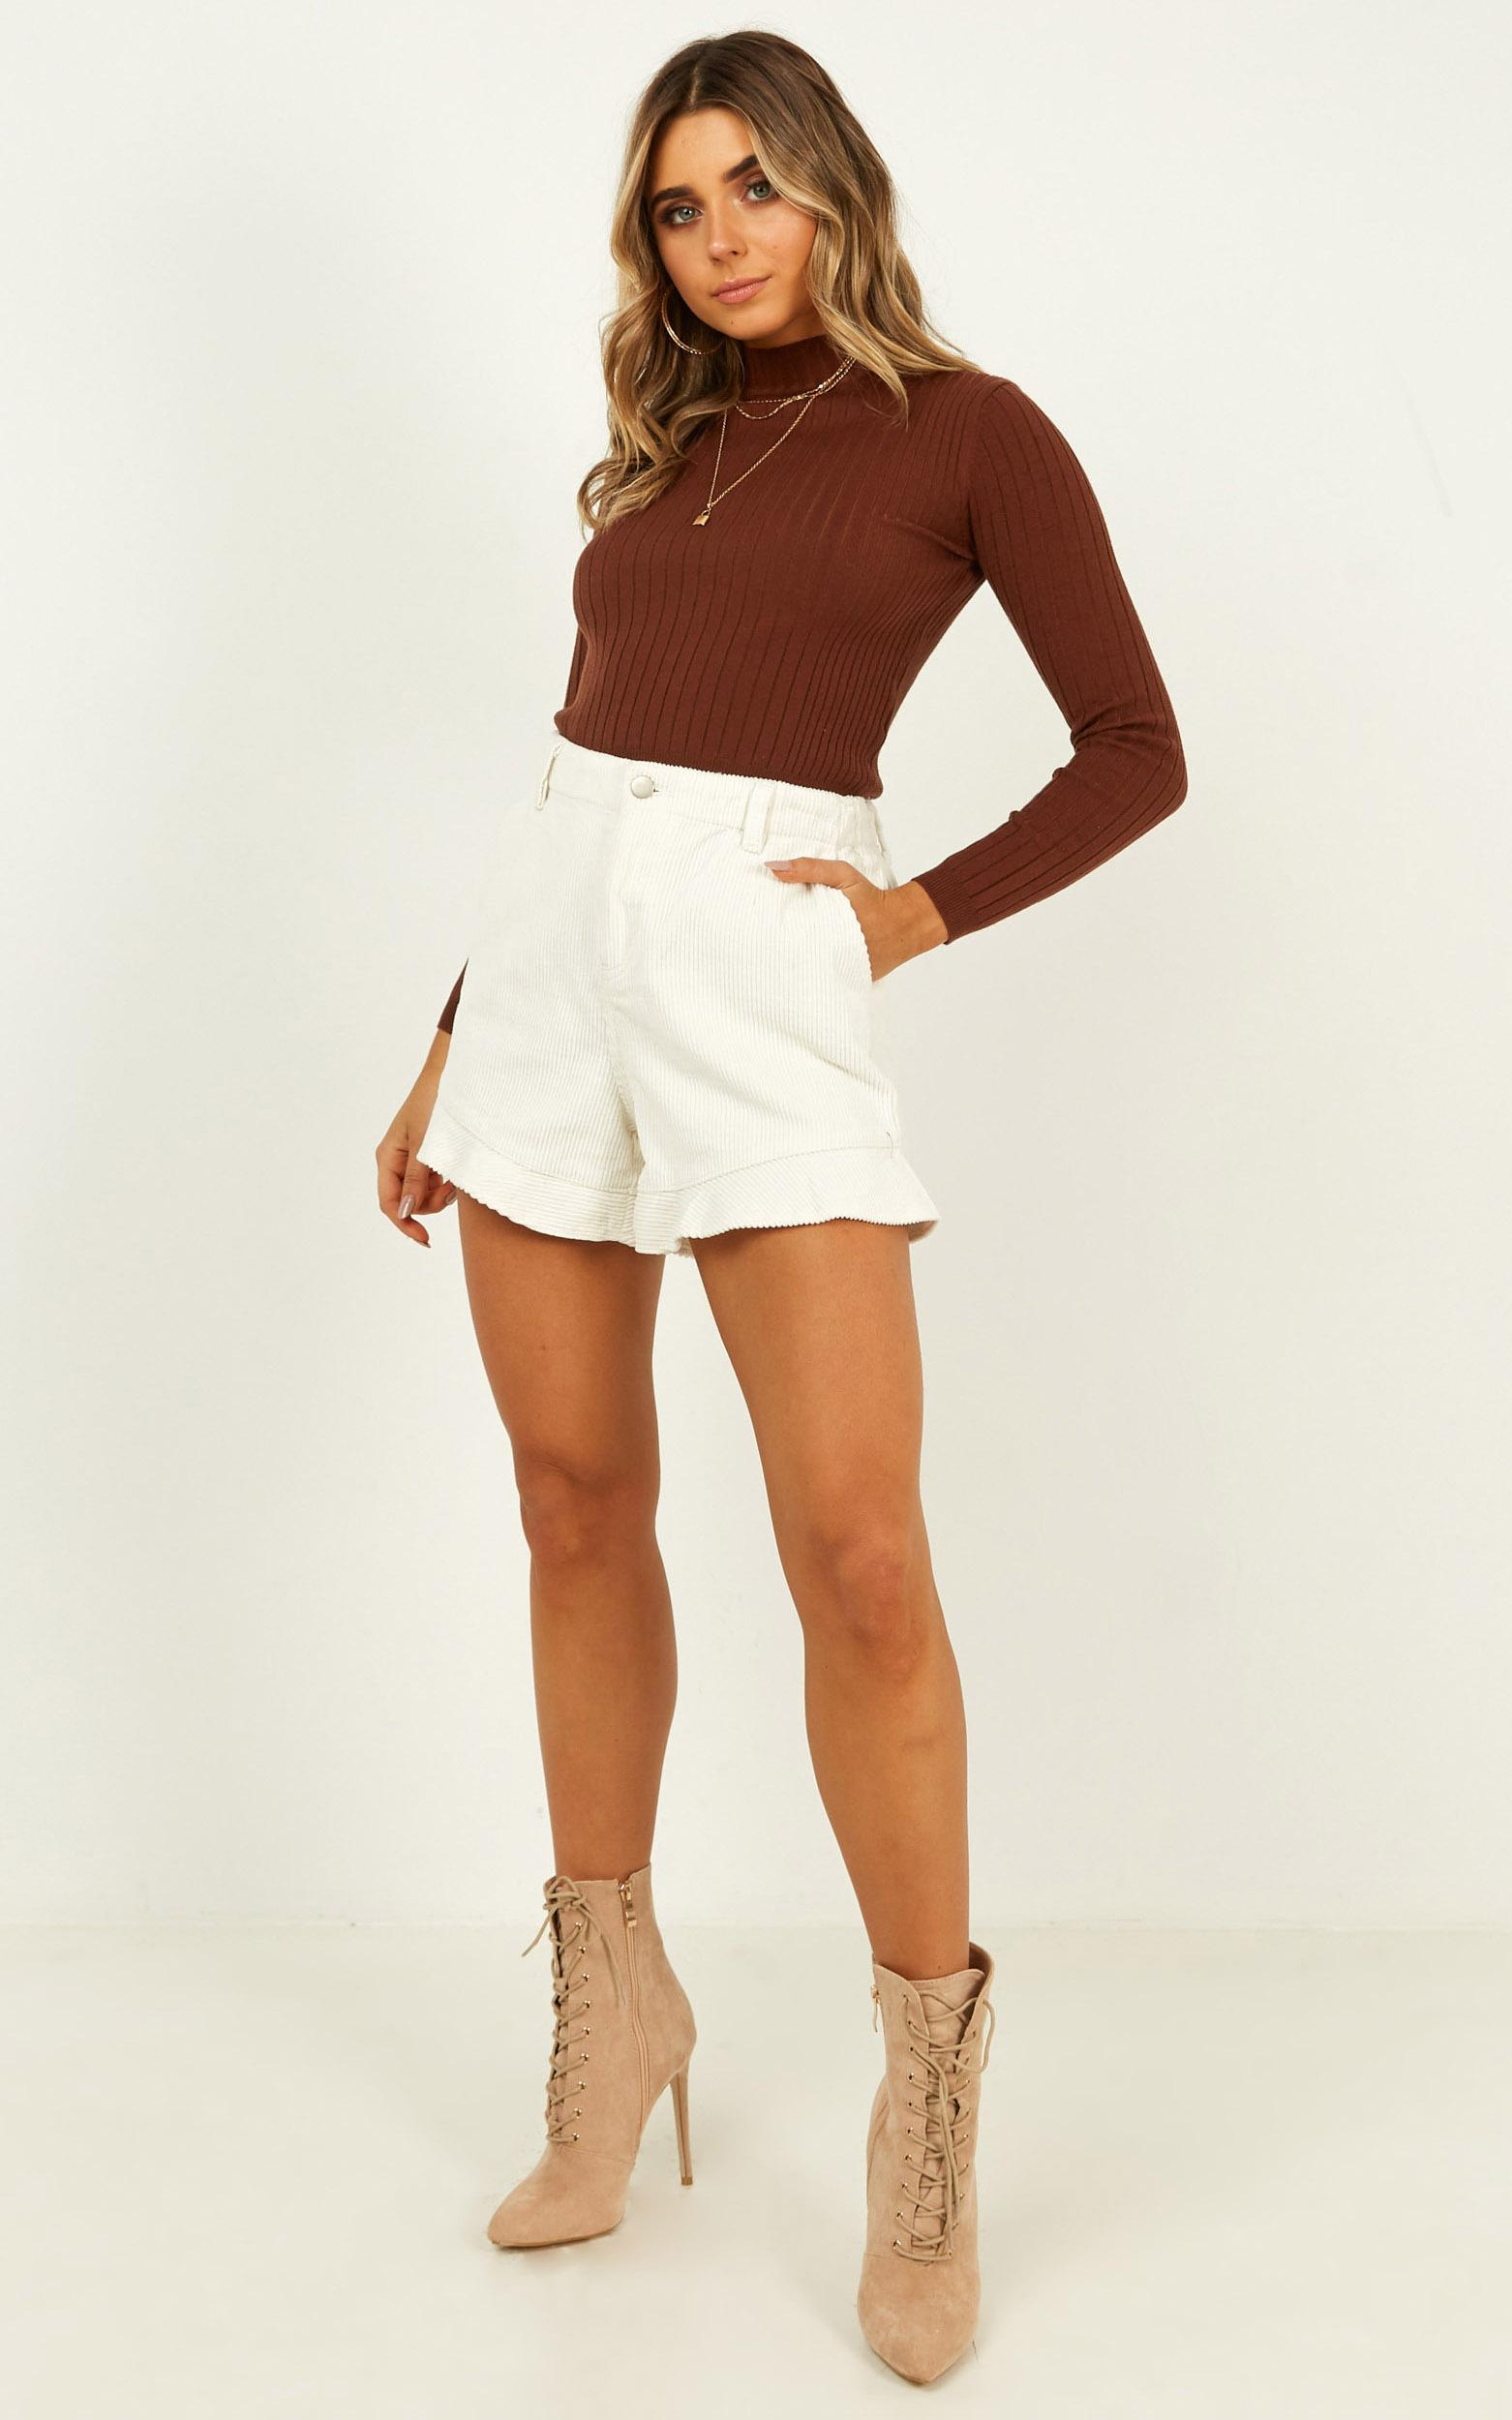 All That You Are Shorts In cream cord - 12 (L), Cream, hi-res image number null